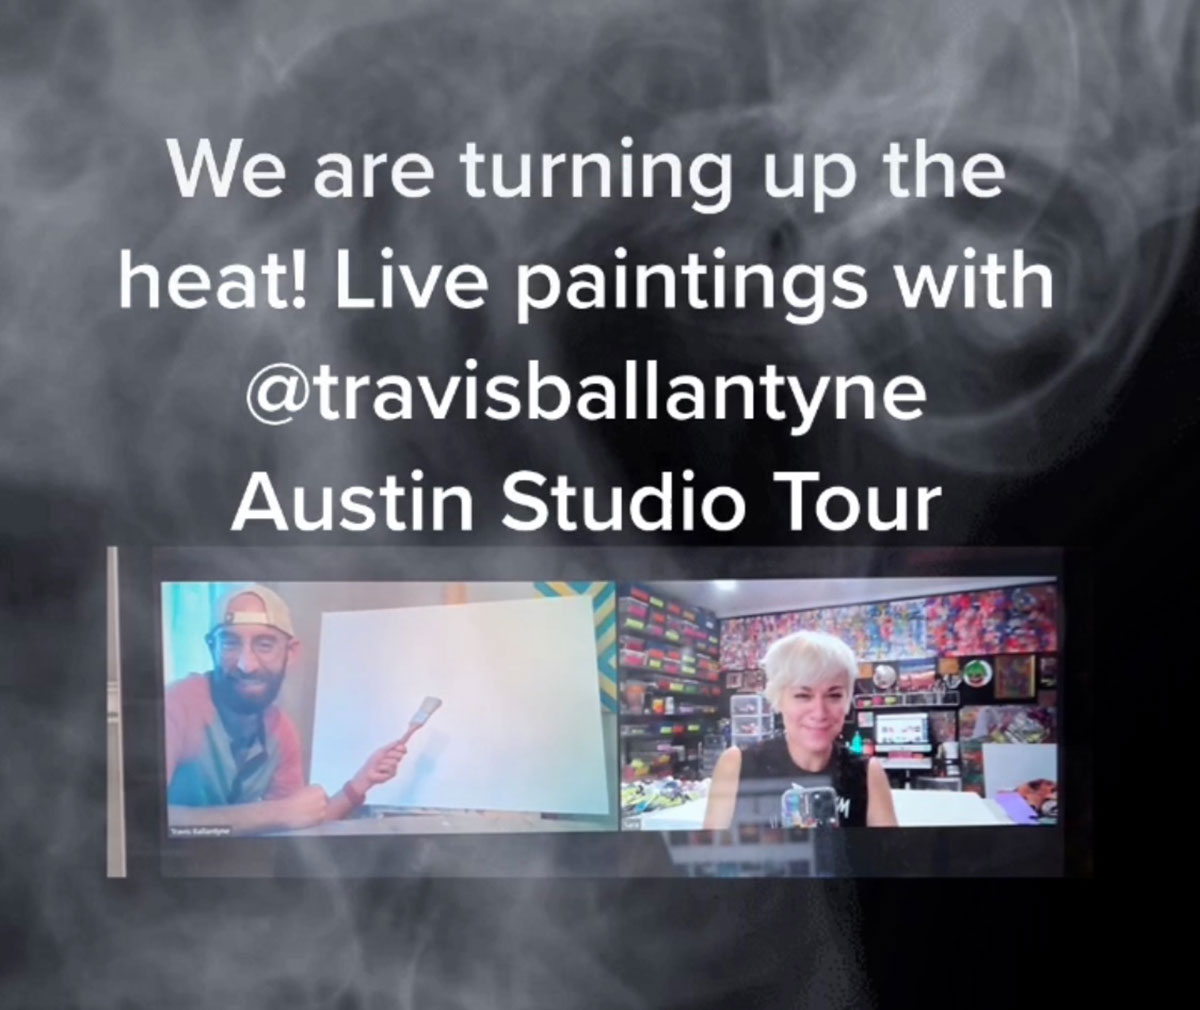 Collaborative Live Painting with Travis Ballantyne